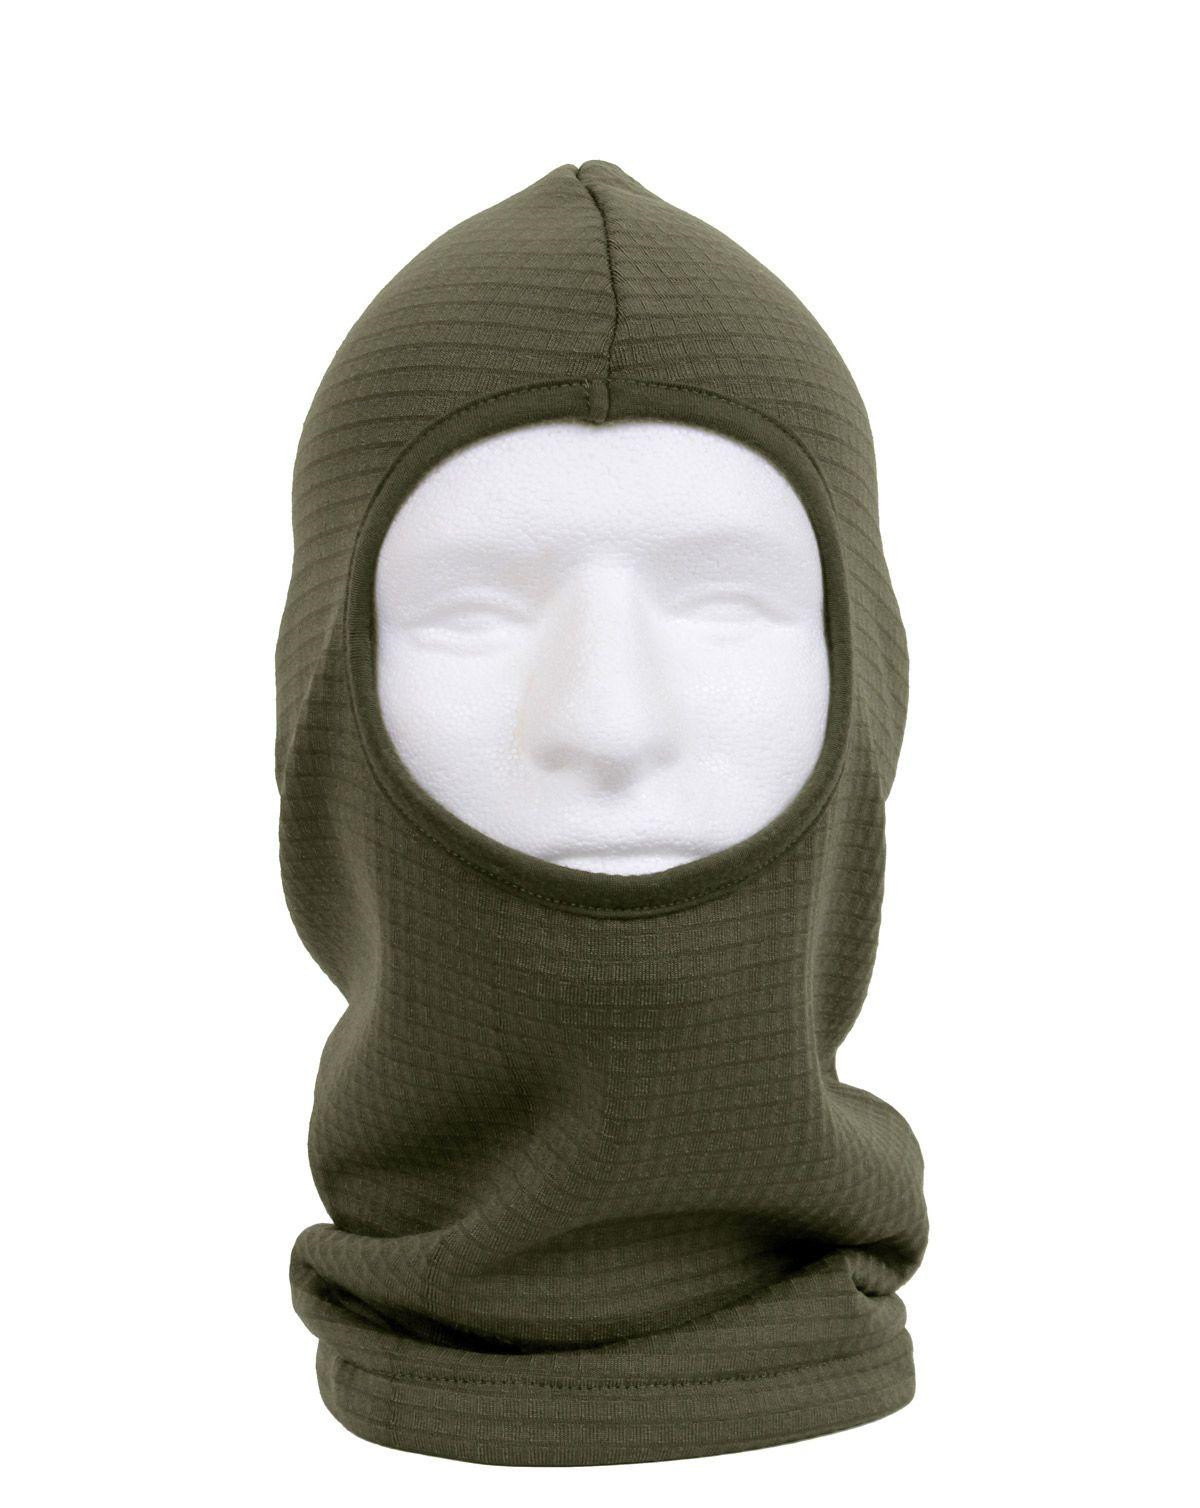 Image of   Rothco Gridfleece Balaclava (Oliven, One Size)